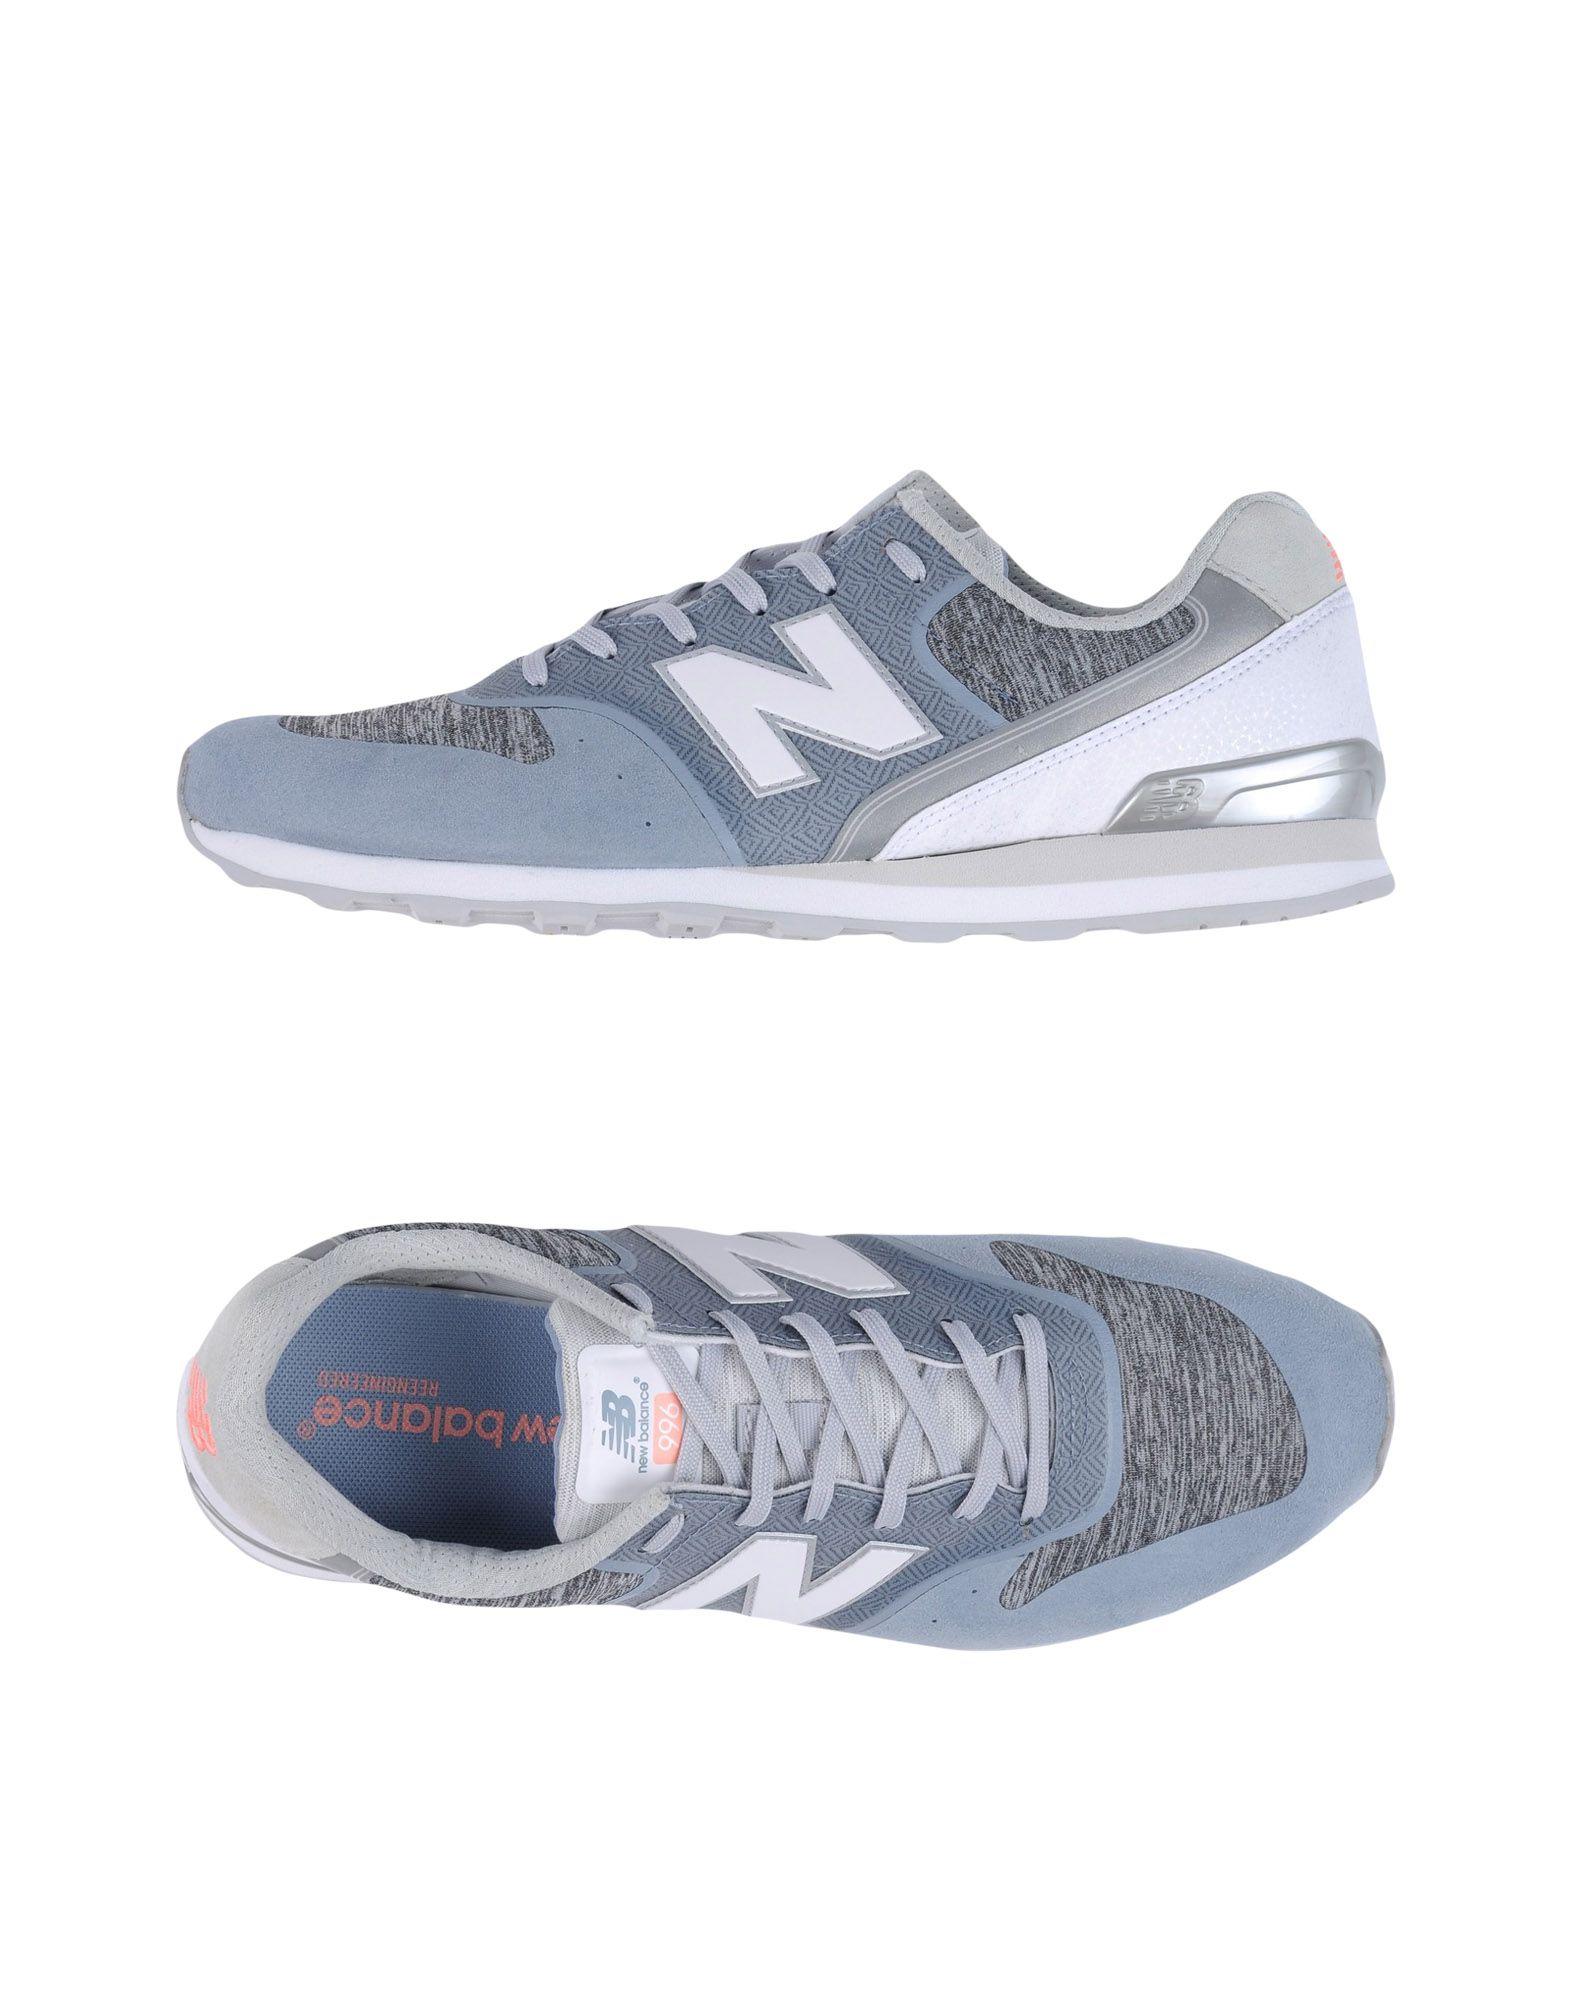 Sneakers New Balance 996 Sophisticated Hybrid - Femme - Sneakers New Balance sur